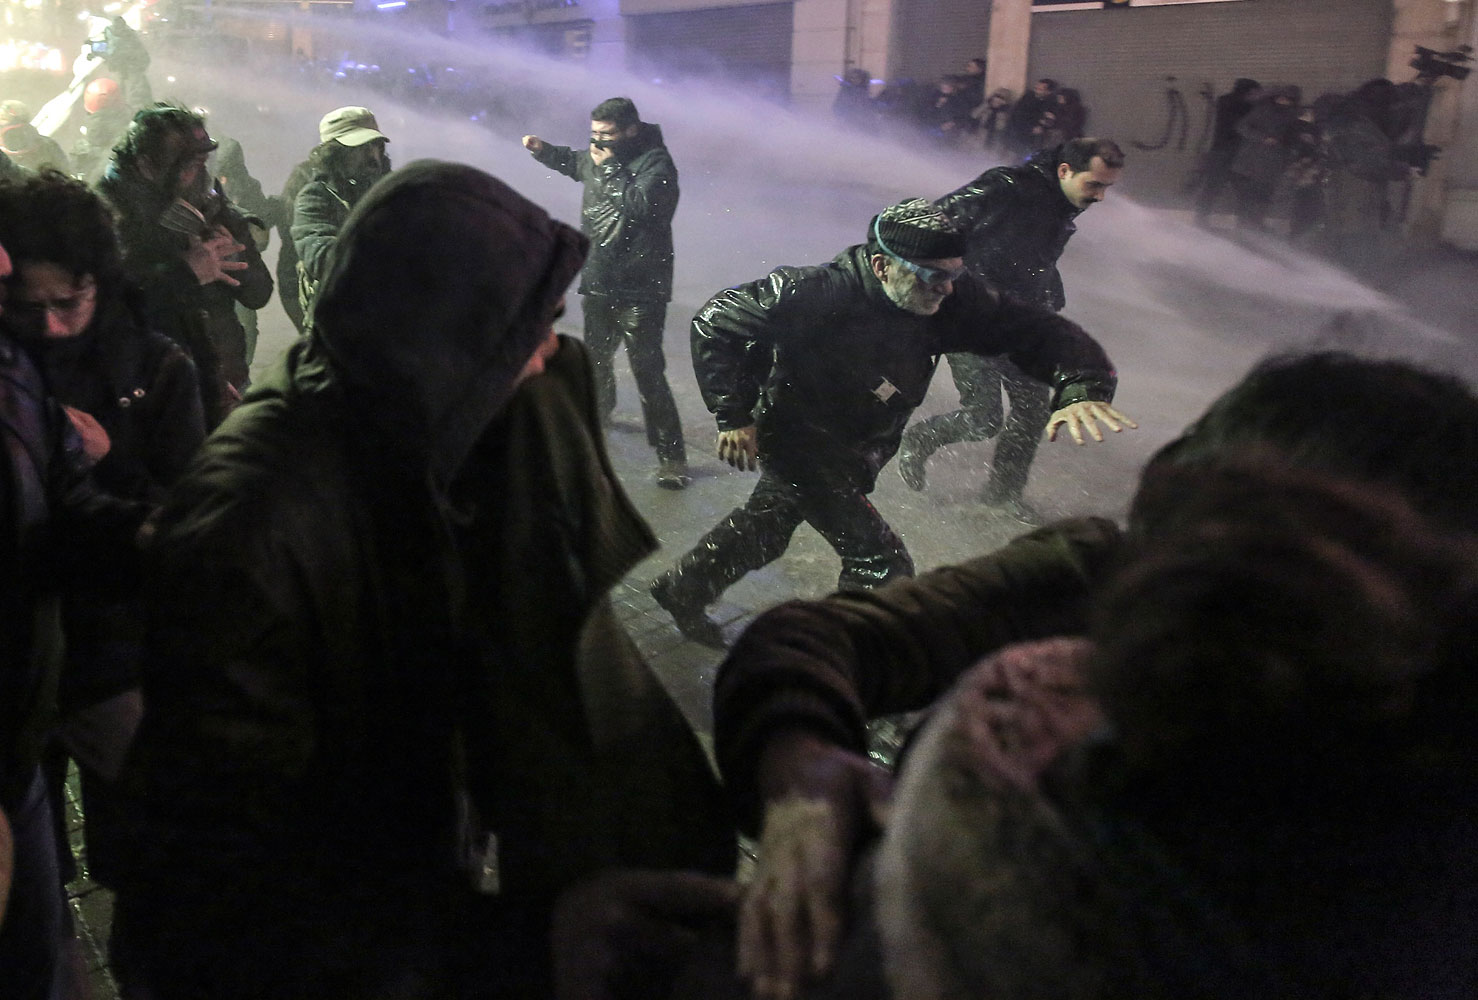 Riot police use water cannons to disperse people who protest the death of Berkin Elvan, a Turkish teenager who was in a coma since being hit in the head by a tear gas canister fired by police during the summer's anti-government protests, in Istanbul, March 11, 2014.